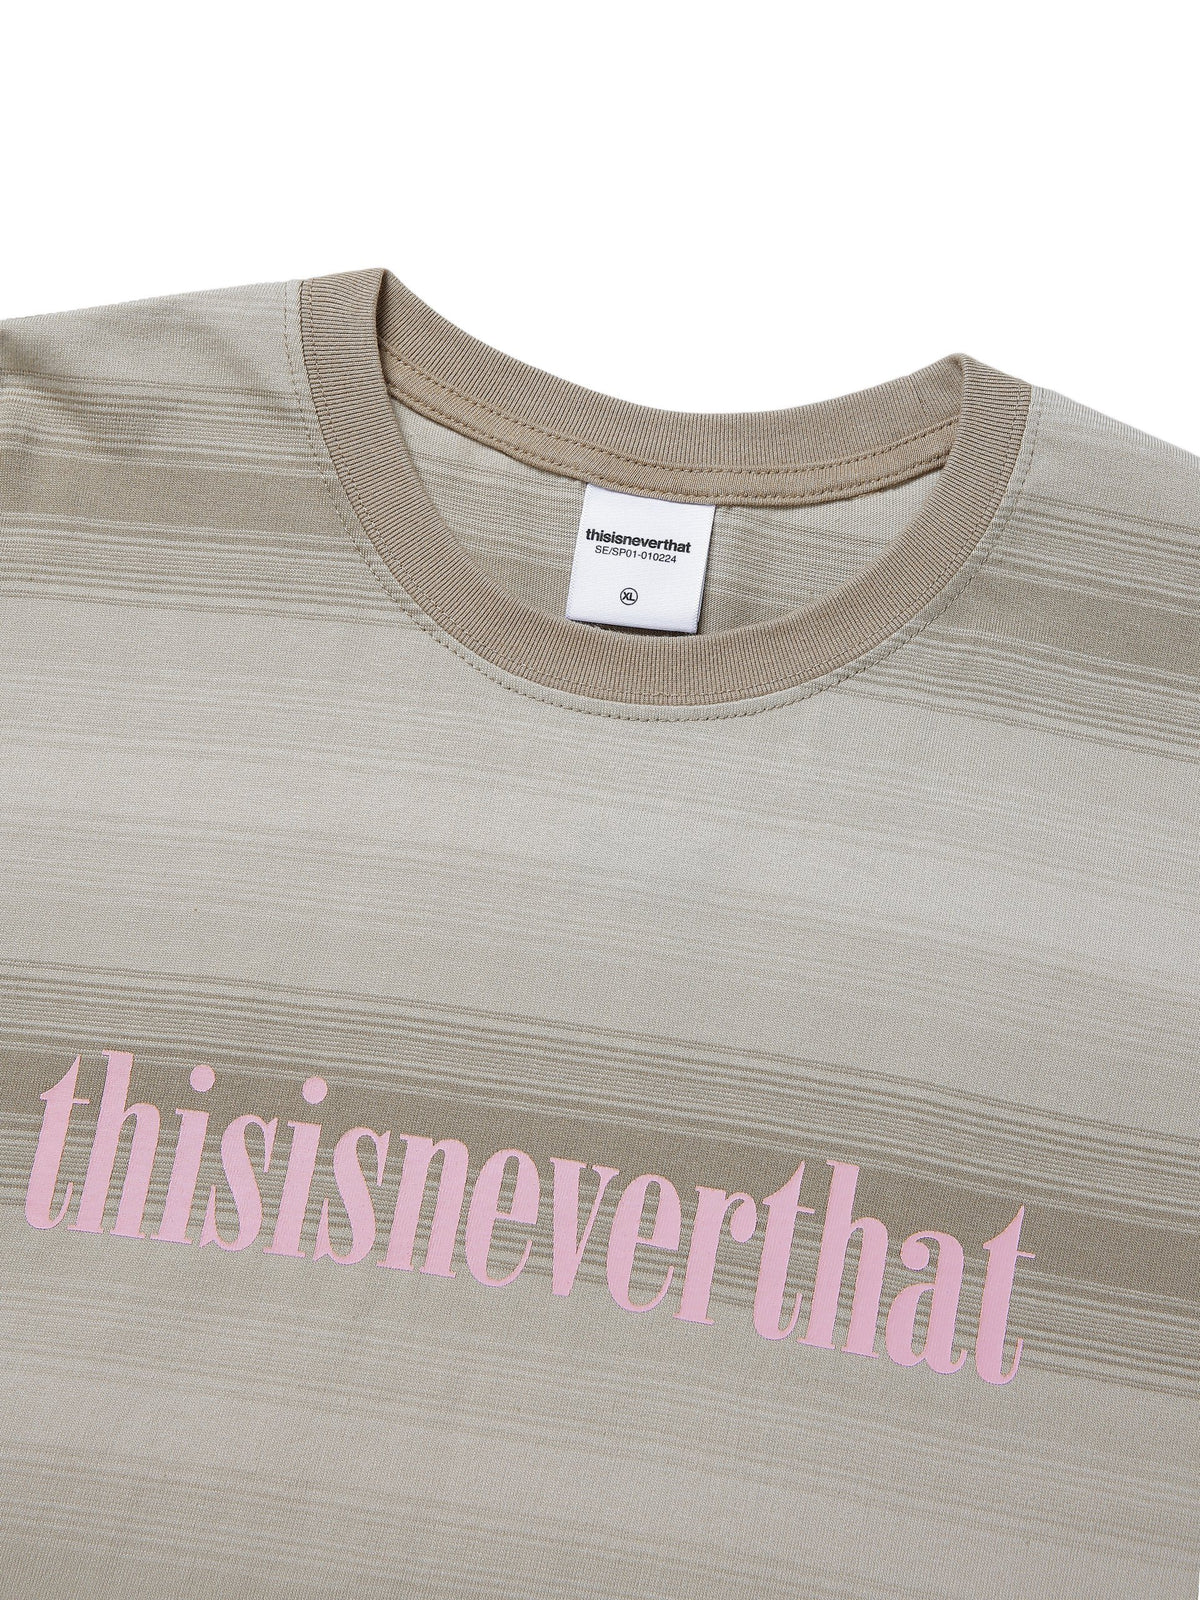 Onyx Striped L/SL Top - thisisneverthat